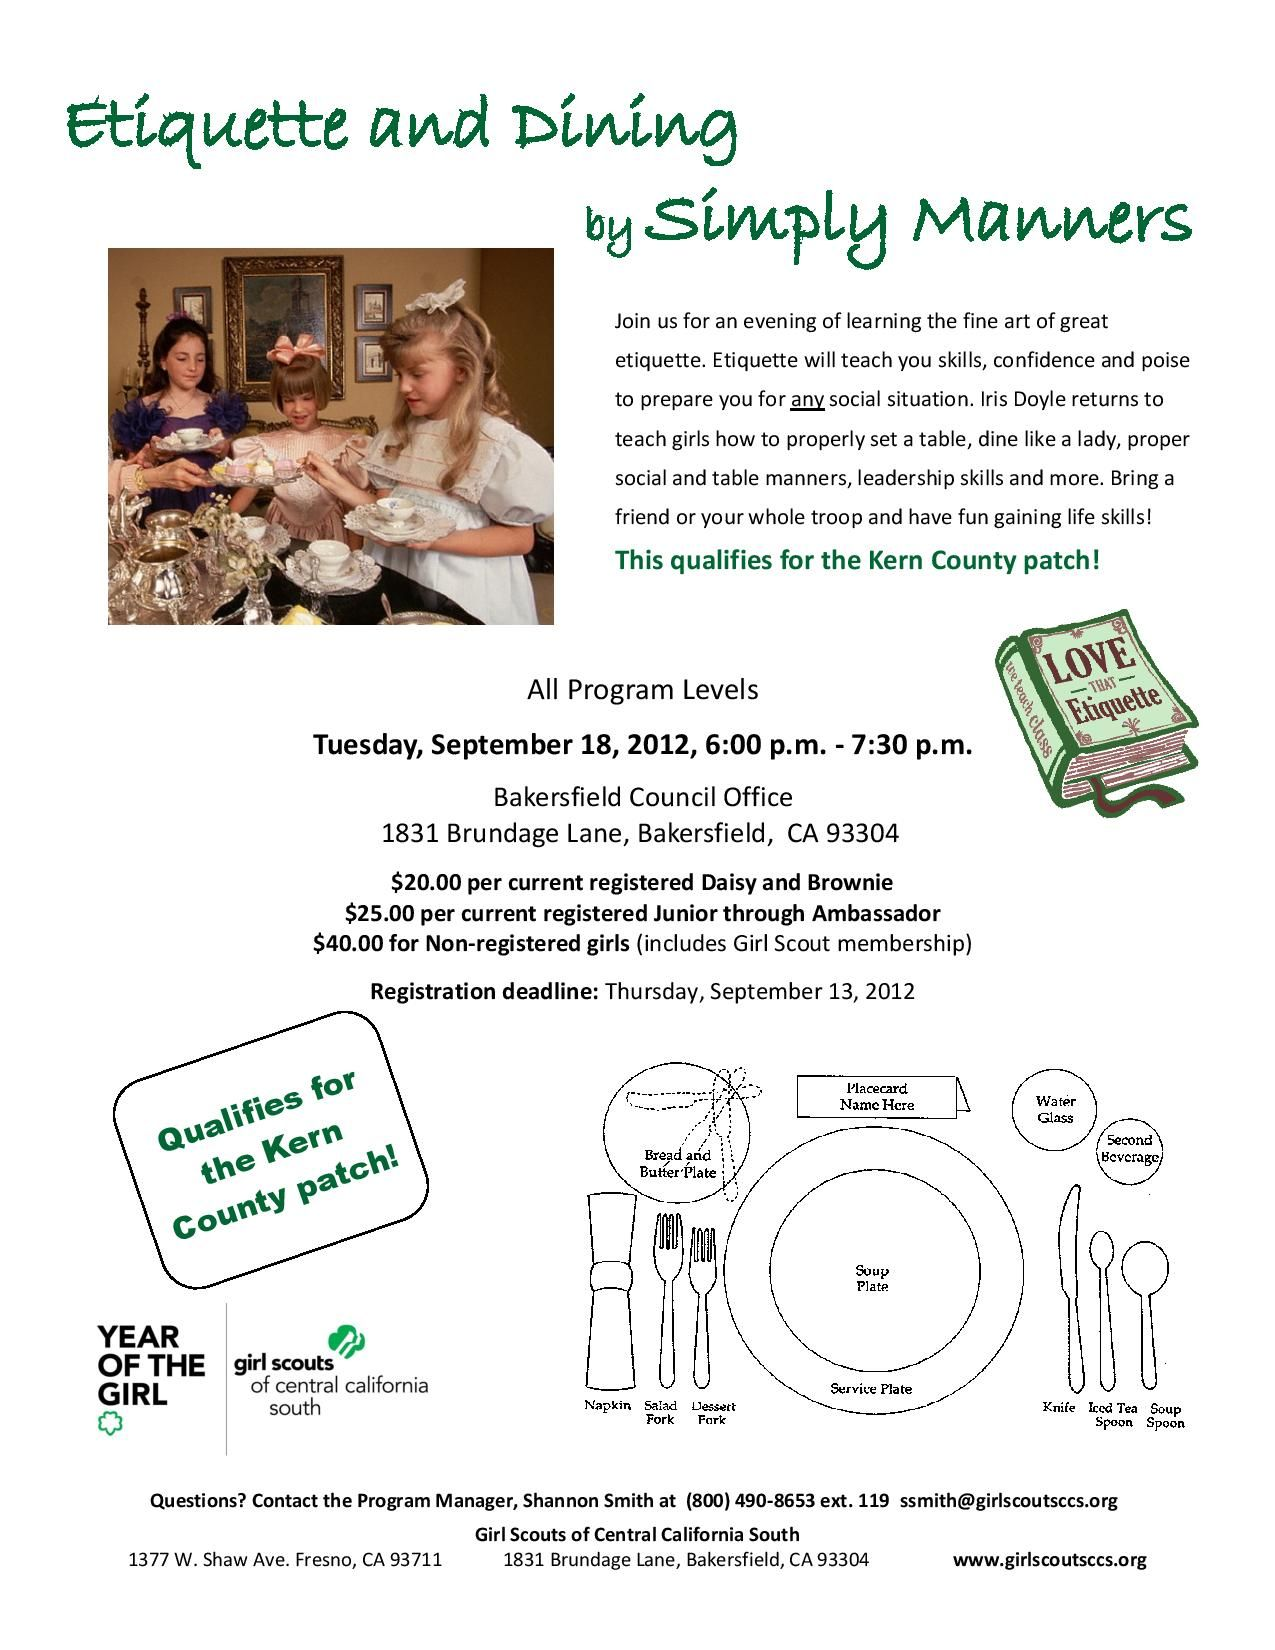 Etiquette Amp Dining By Simply Manners At Our Bakersfield Council Office September 18 From 6